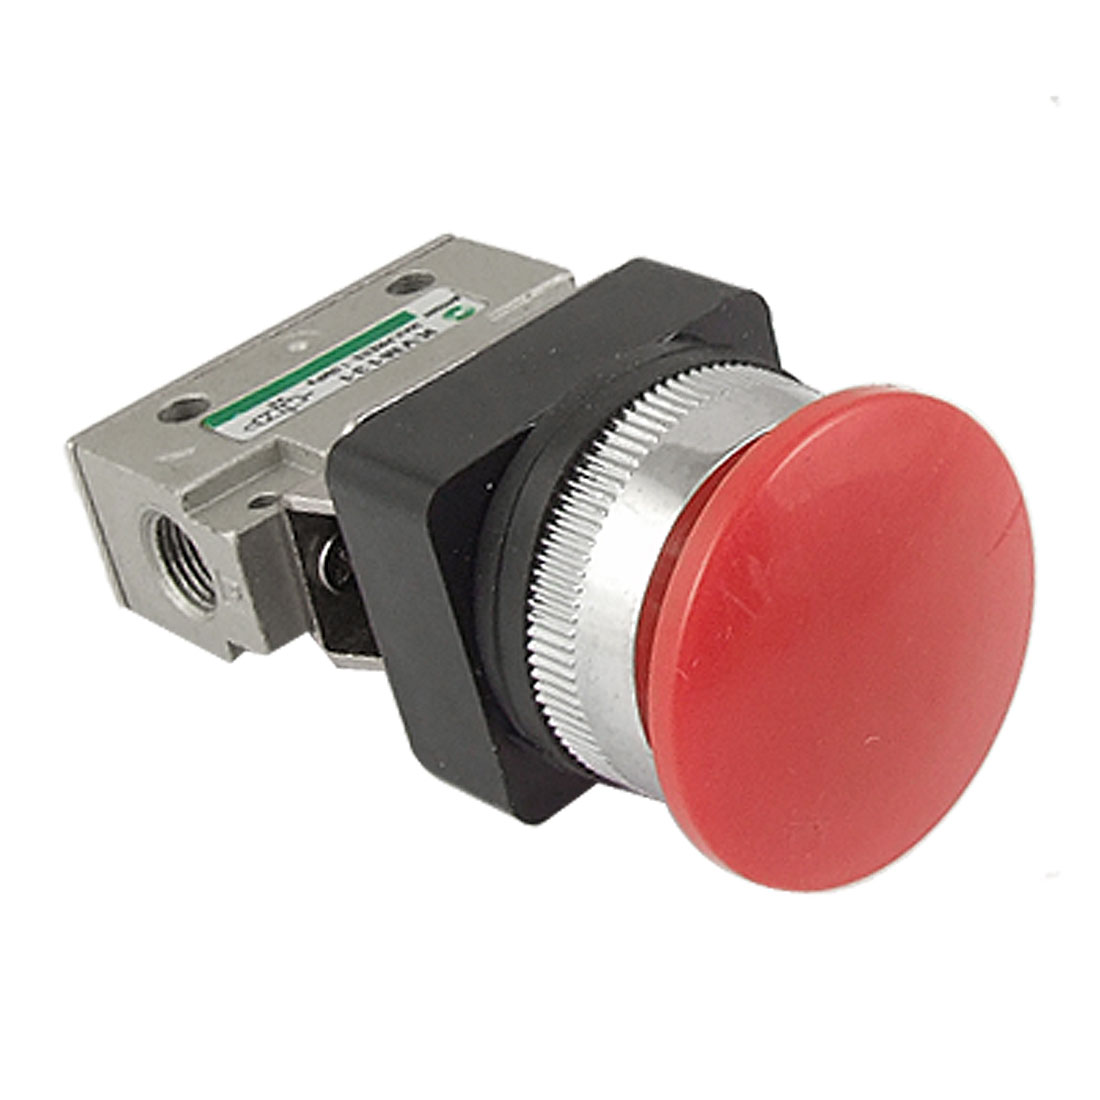 KVM131 2 Position 3 Way Mushroom Button Mechanical Valve